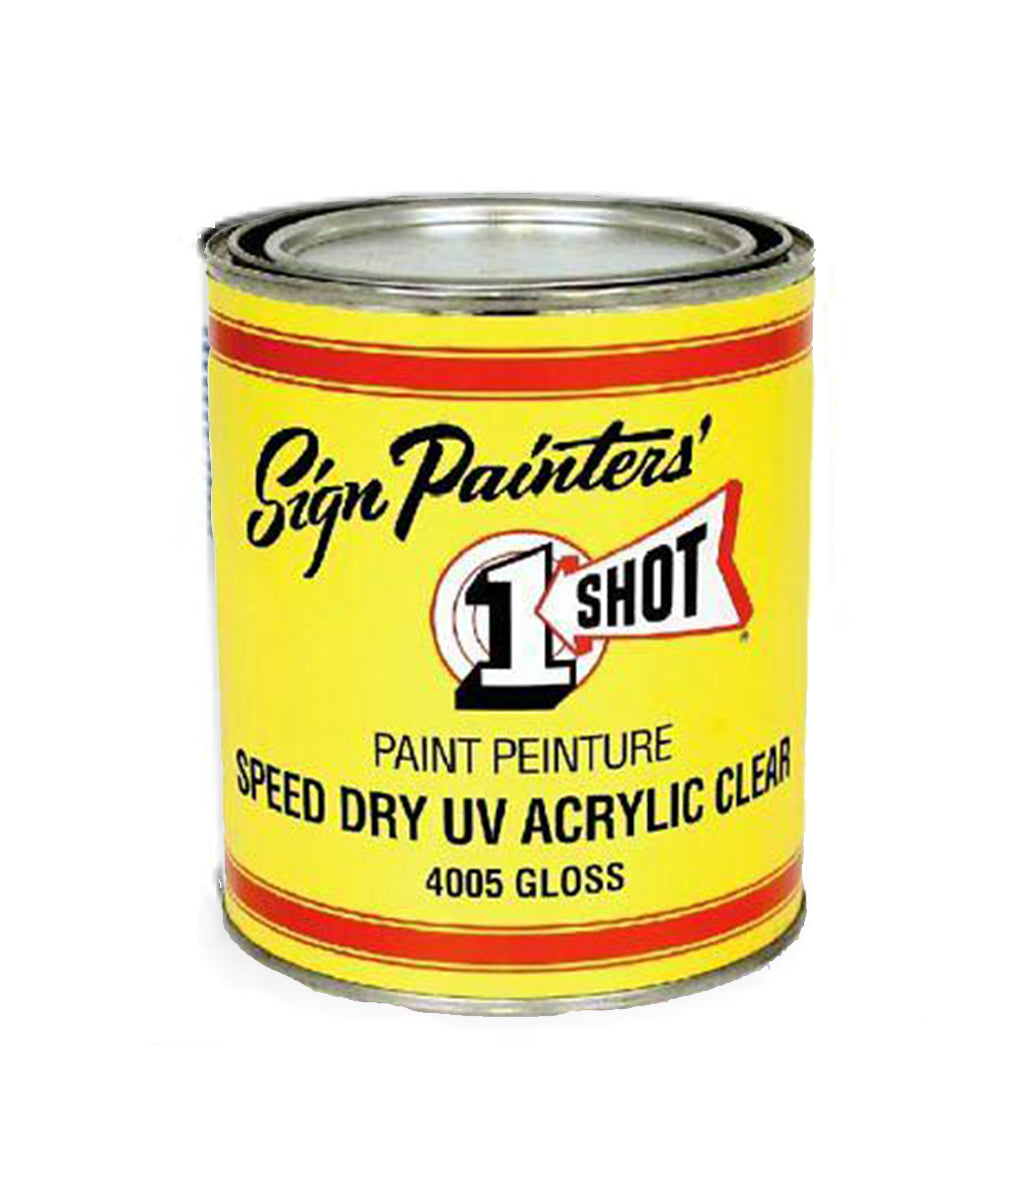 One Shot UV Acrylic Clear Gloss, available at Clement's Paint in Austin, TX.